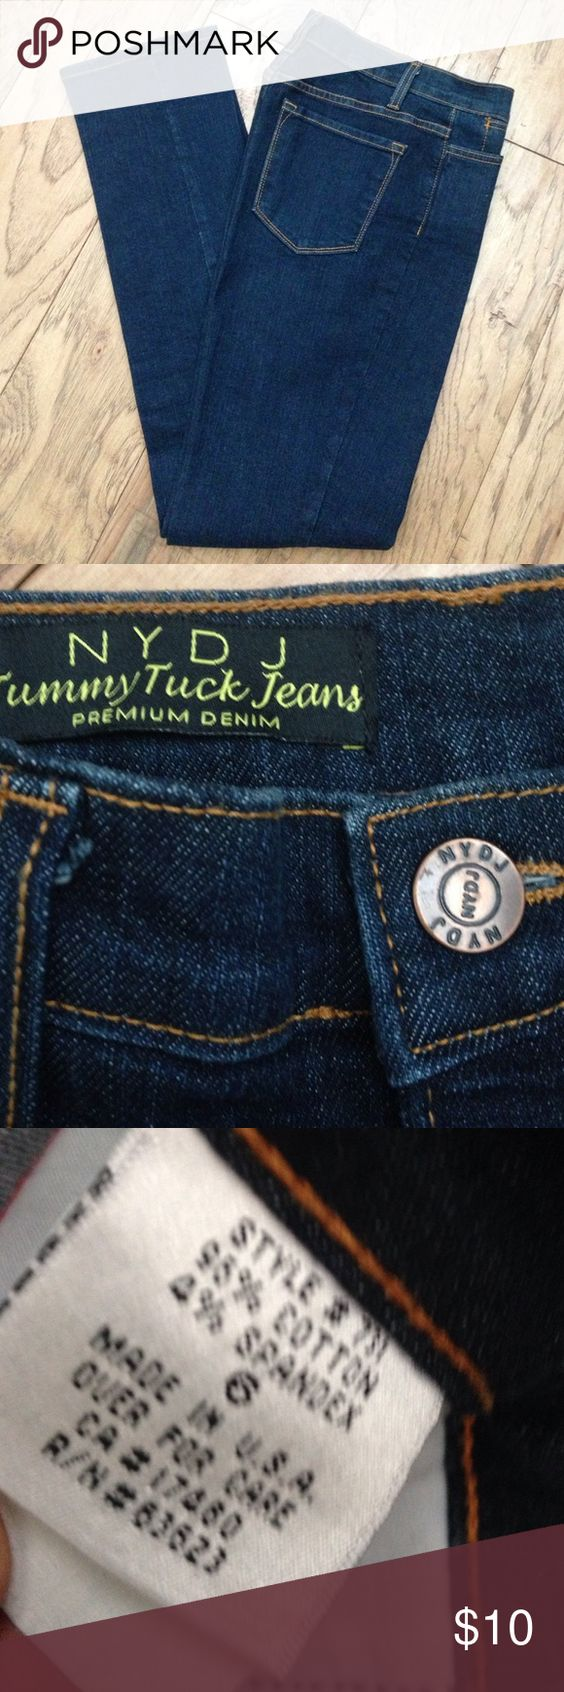 "NYDJ Tummy Tuck Denim Jeans Like new, dark wash, zip fly. 32.5"" inseam NYDJ Jeans"